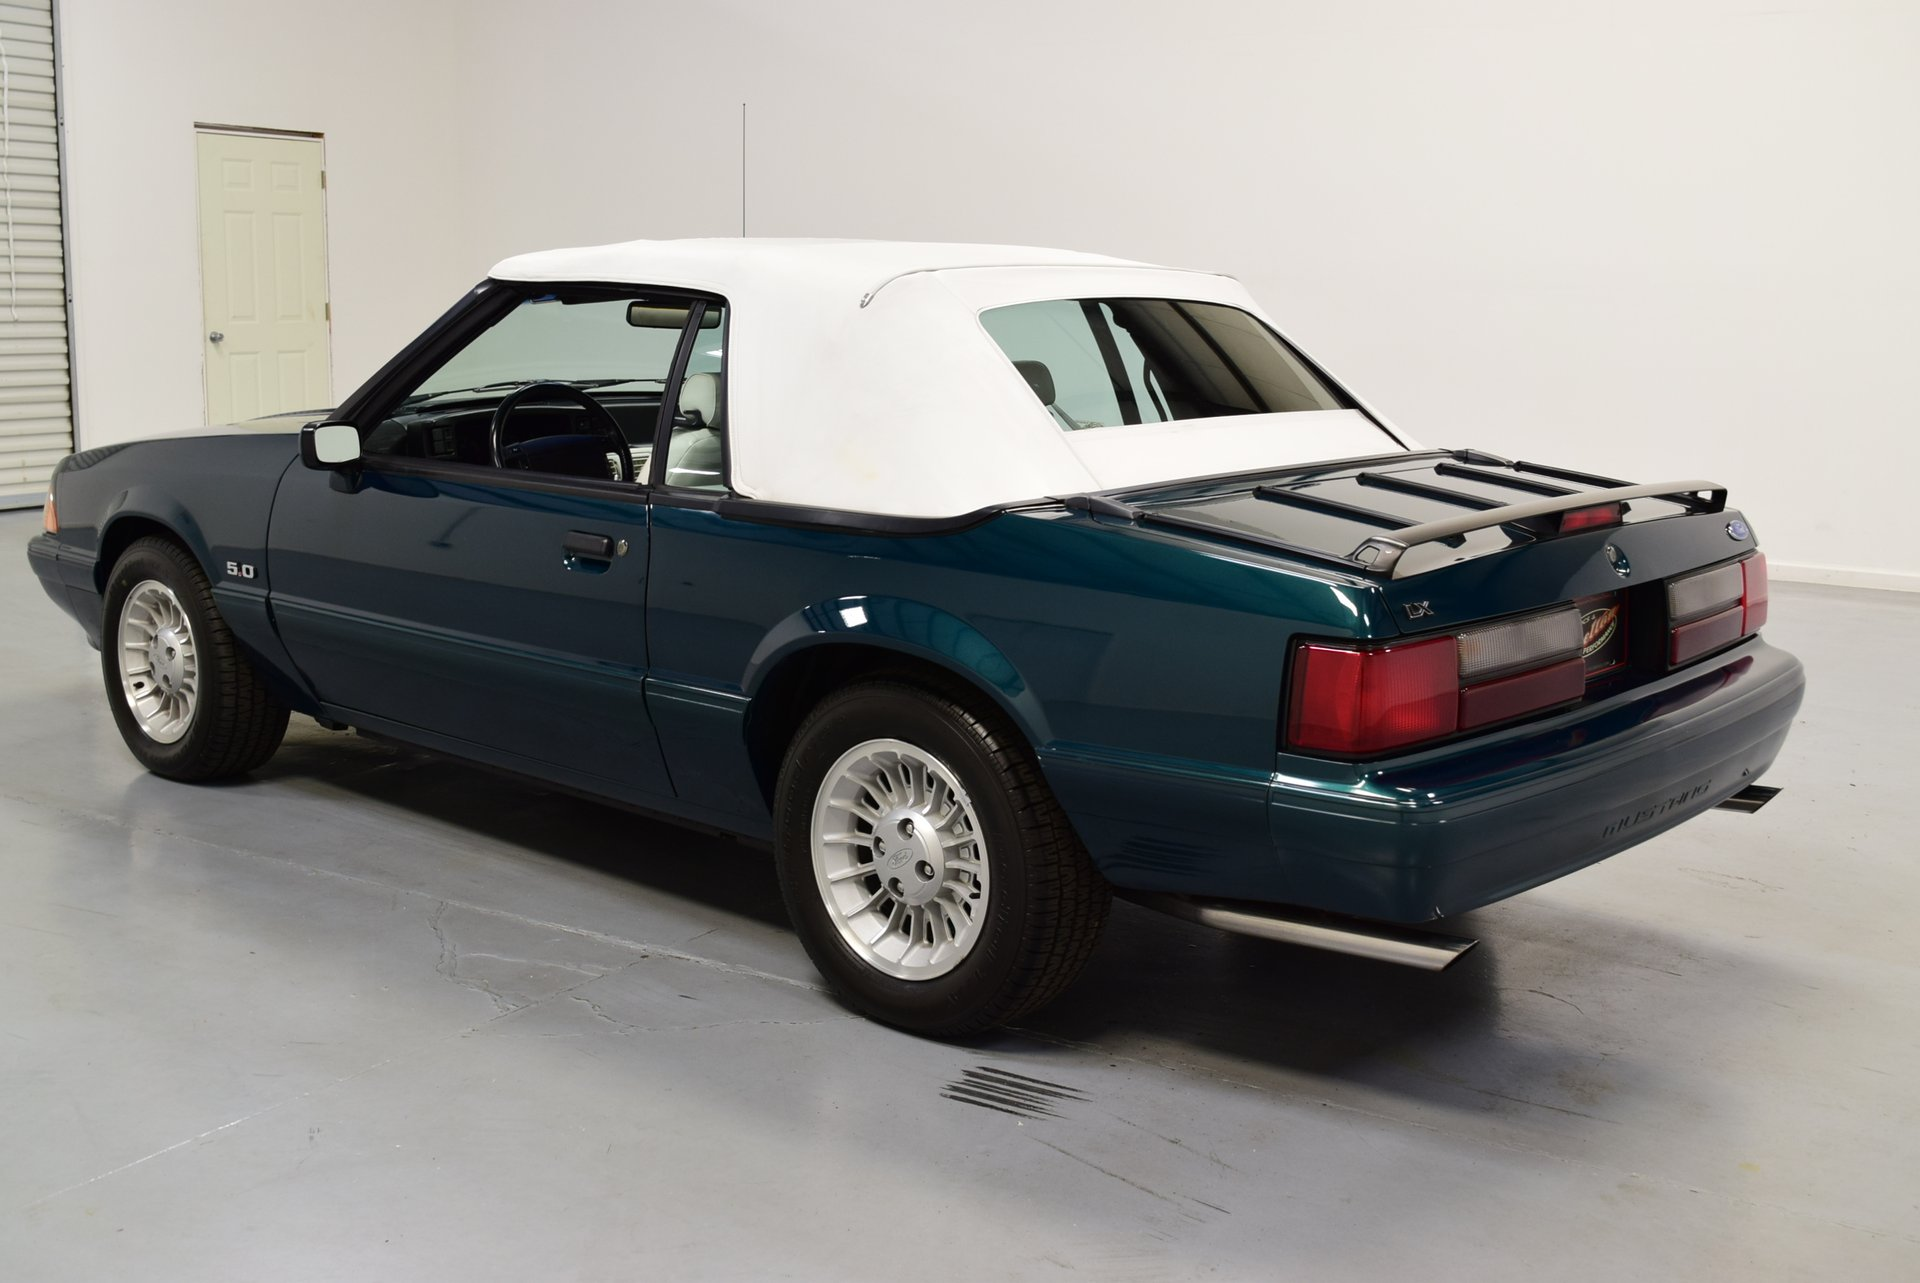 1990 Ford Mustang | Shelton Classics & Performance